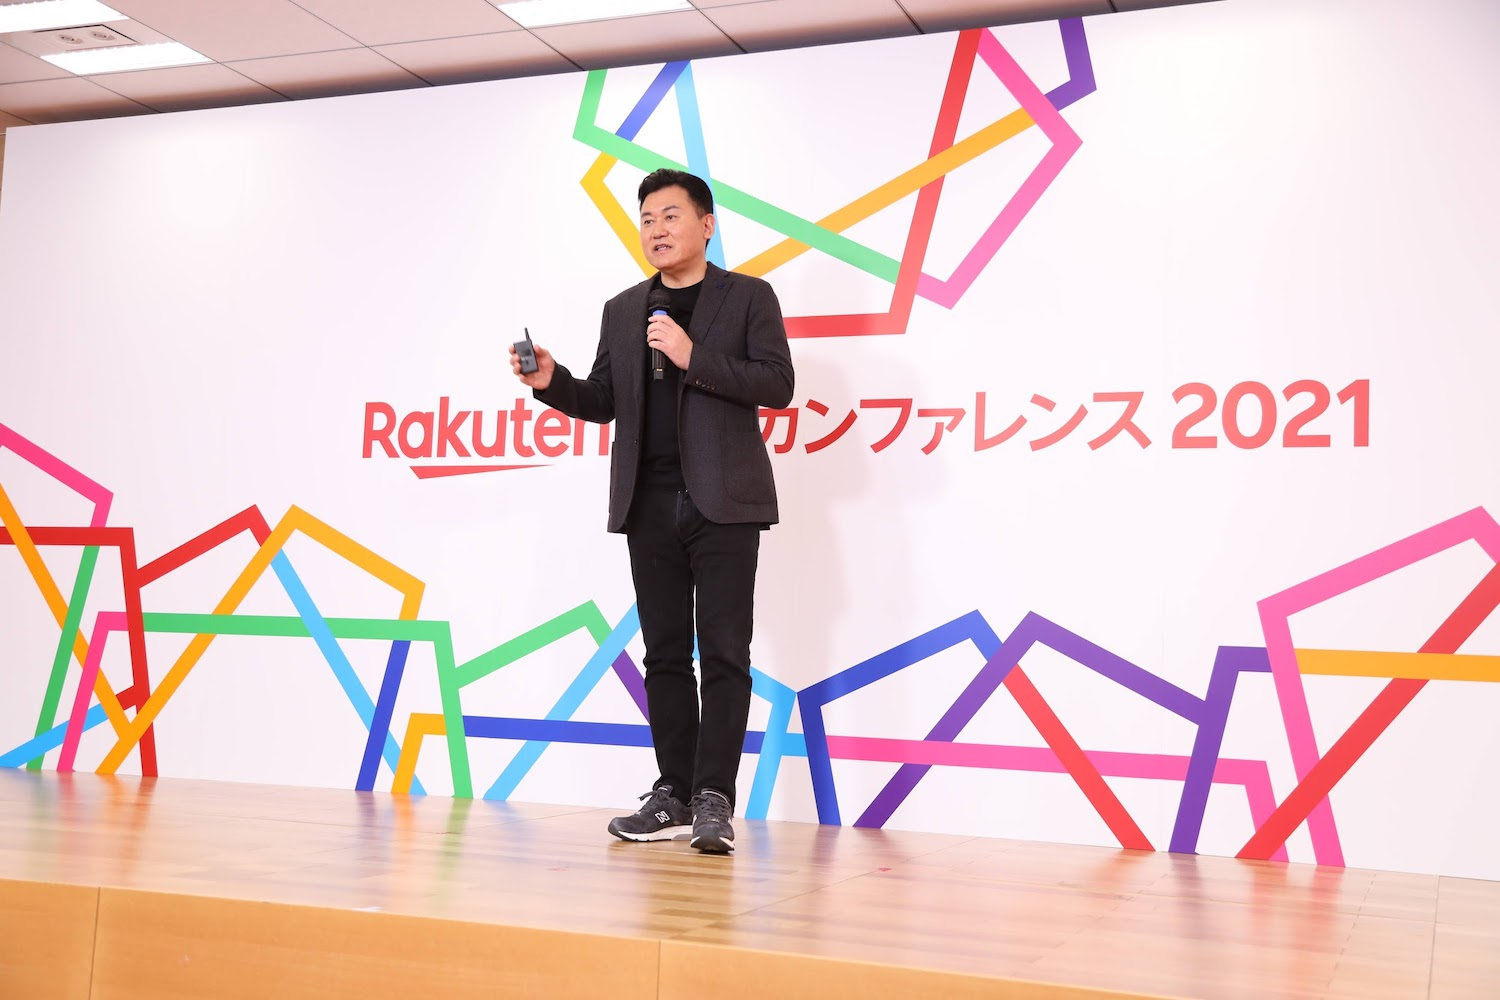 A record number of merchants registered for this year's Rakuten New Year Conference to hear Mickey Mikitani share his vision for the future of e-commerce.